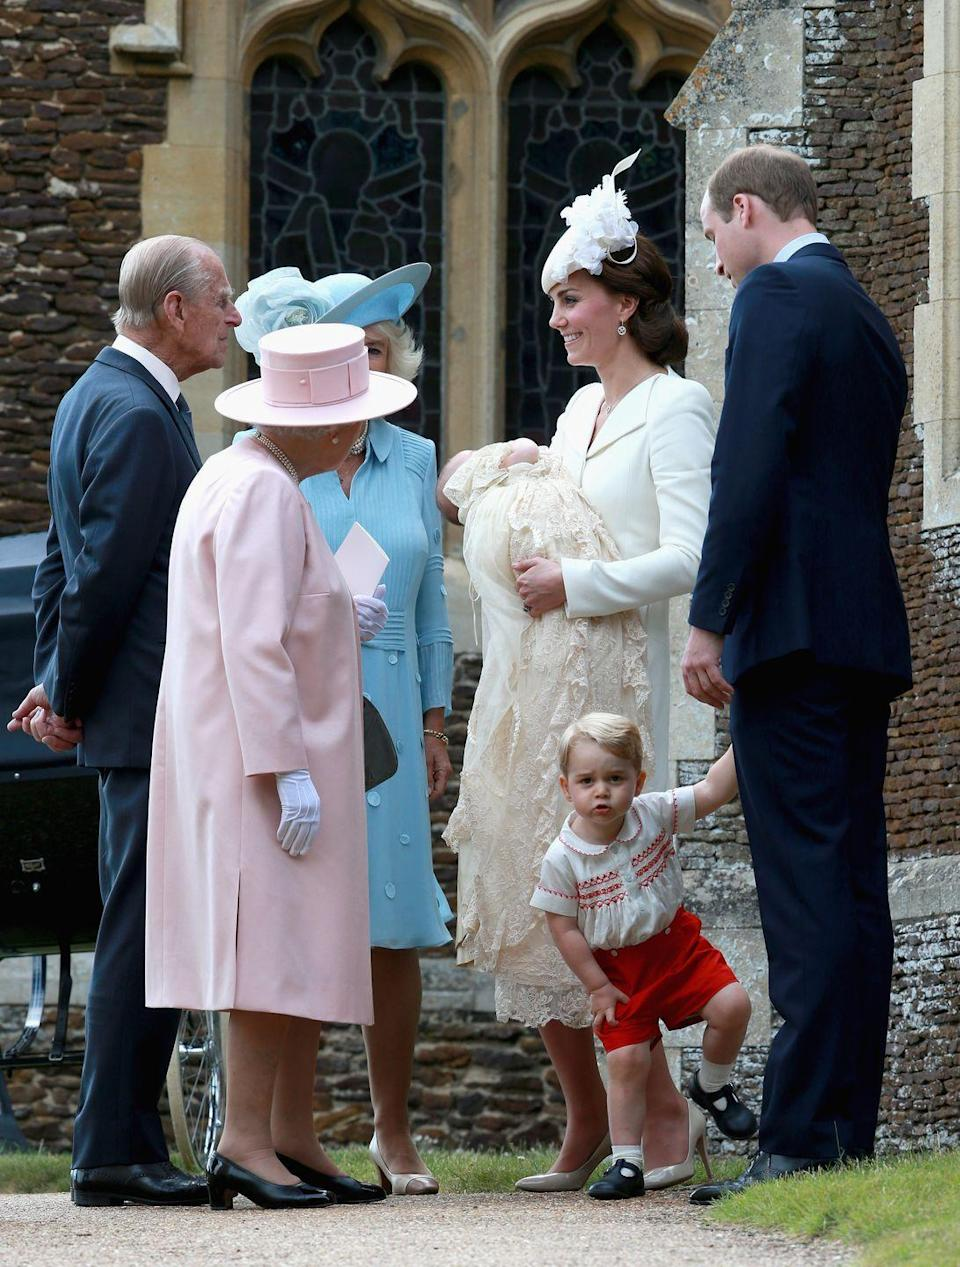 <p>Like any good grandparents, Prince Philip, 94, and Queen Elizabeth II, 89, enjoy cooing over their grandchildren any chance they get. Here, the couple celebrate Princess Charlotte at her July 5 christening on the Sandringham Estate in King's Lynn, England. </p>